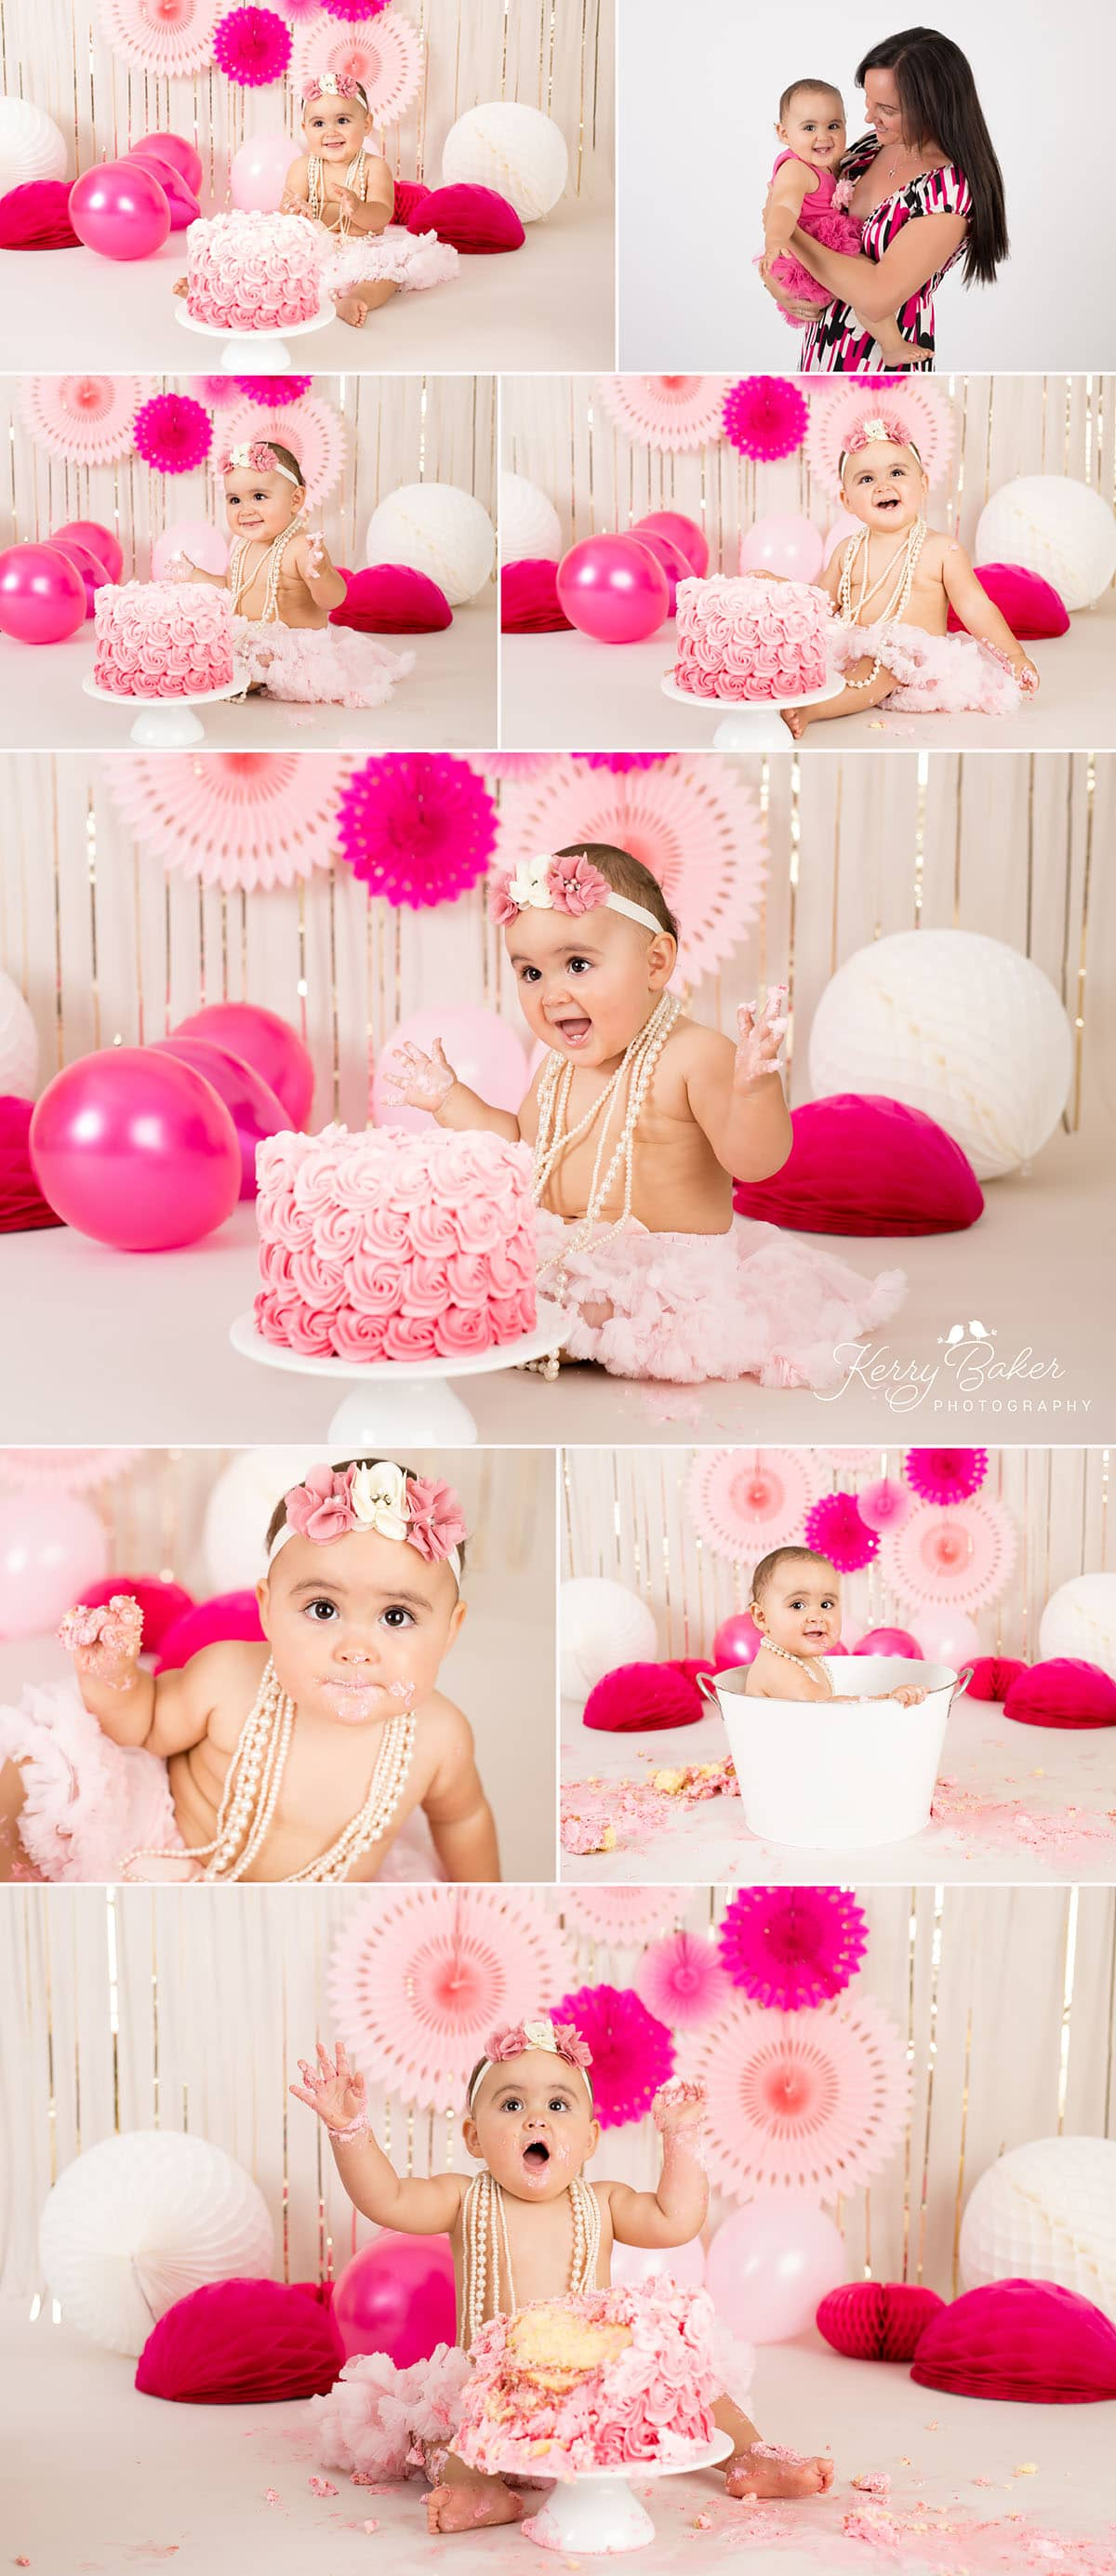 pink smash the cake photos in perth with baby girl Eden